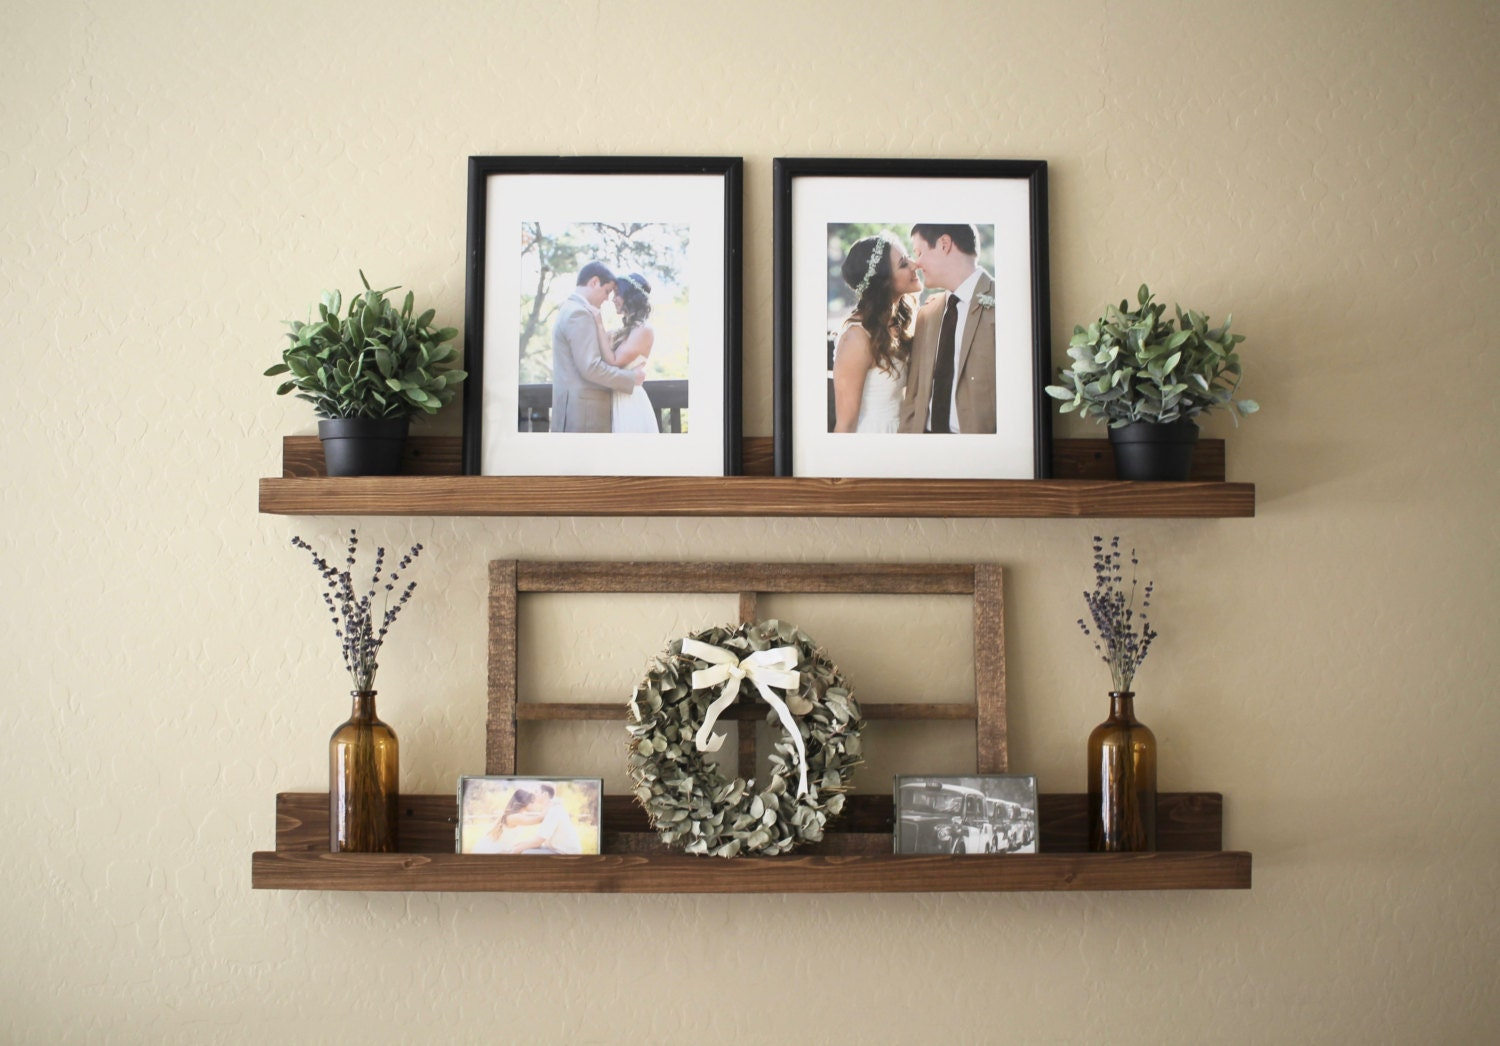 Rustic Wooden Picture Ledge Shelf Ledge Shelf Ledge Shelves